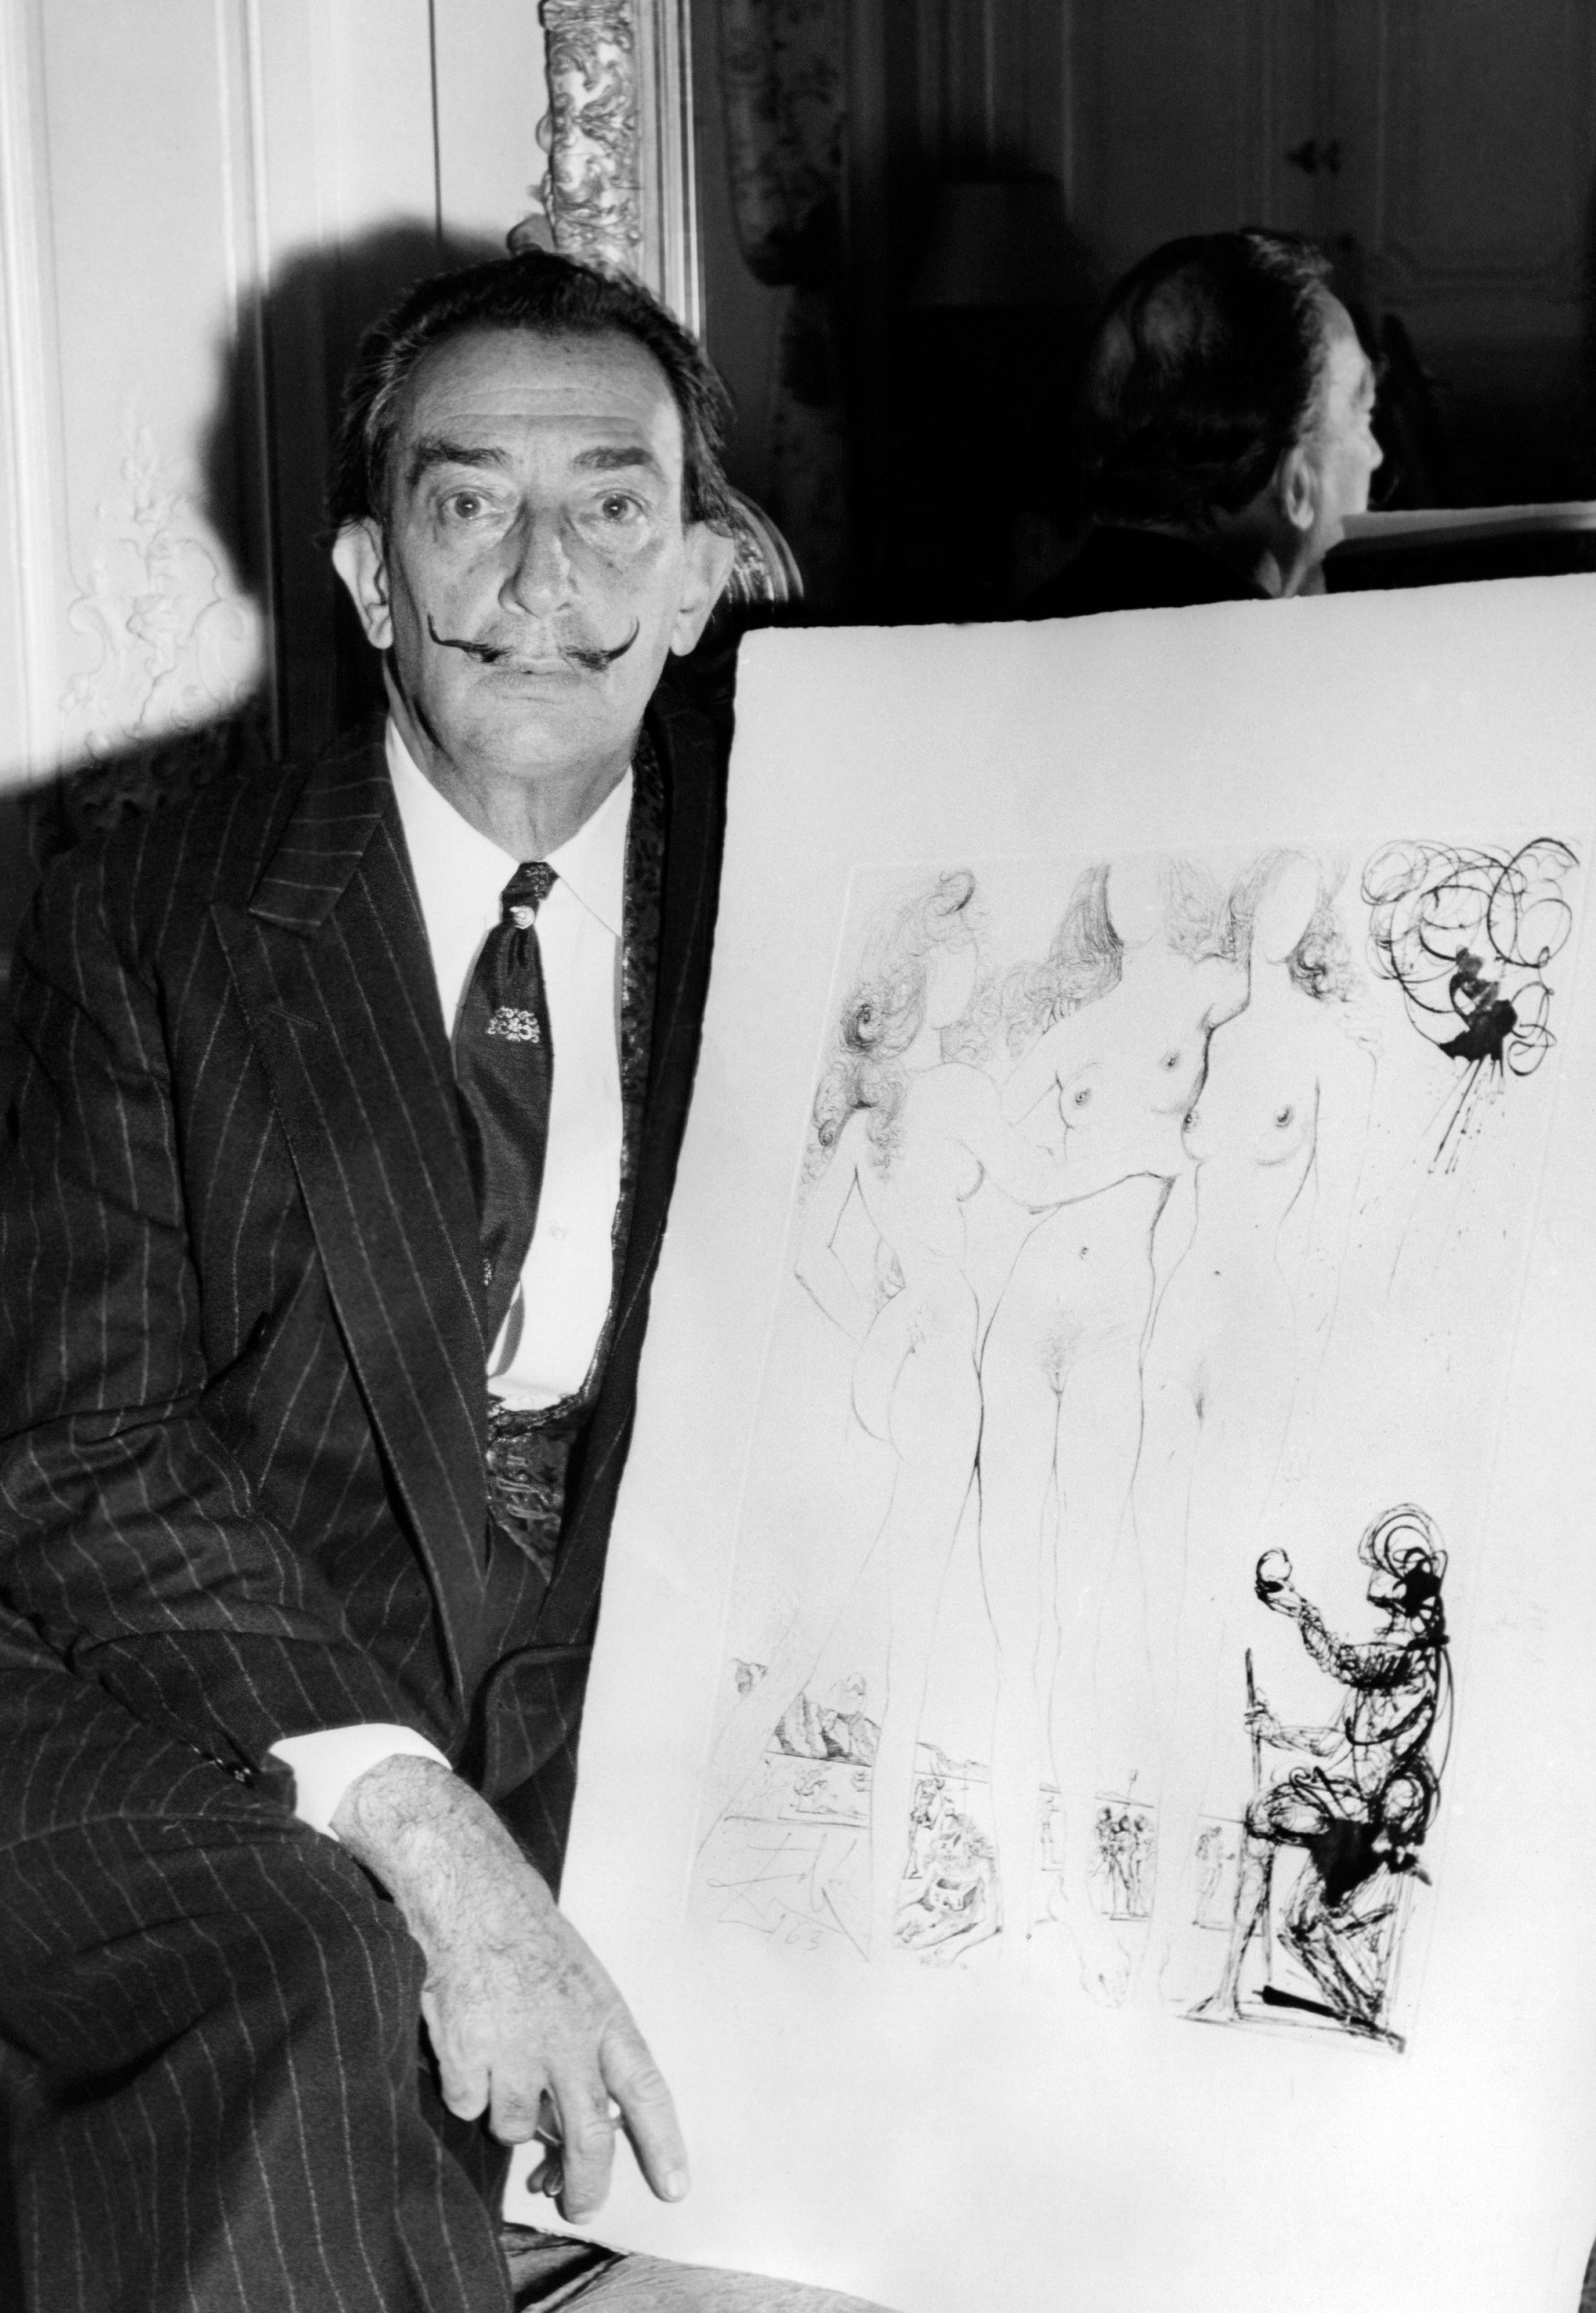 Salvador Dali with drawings